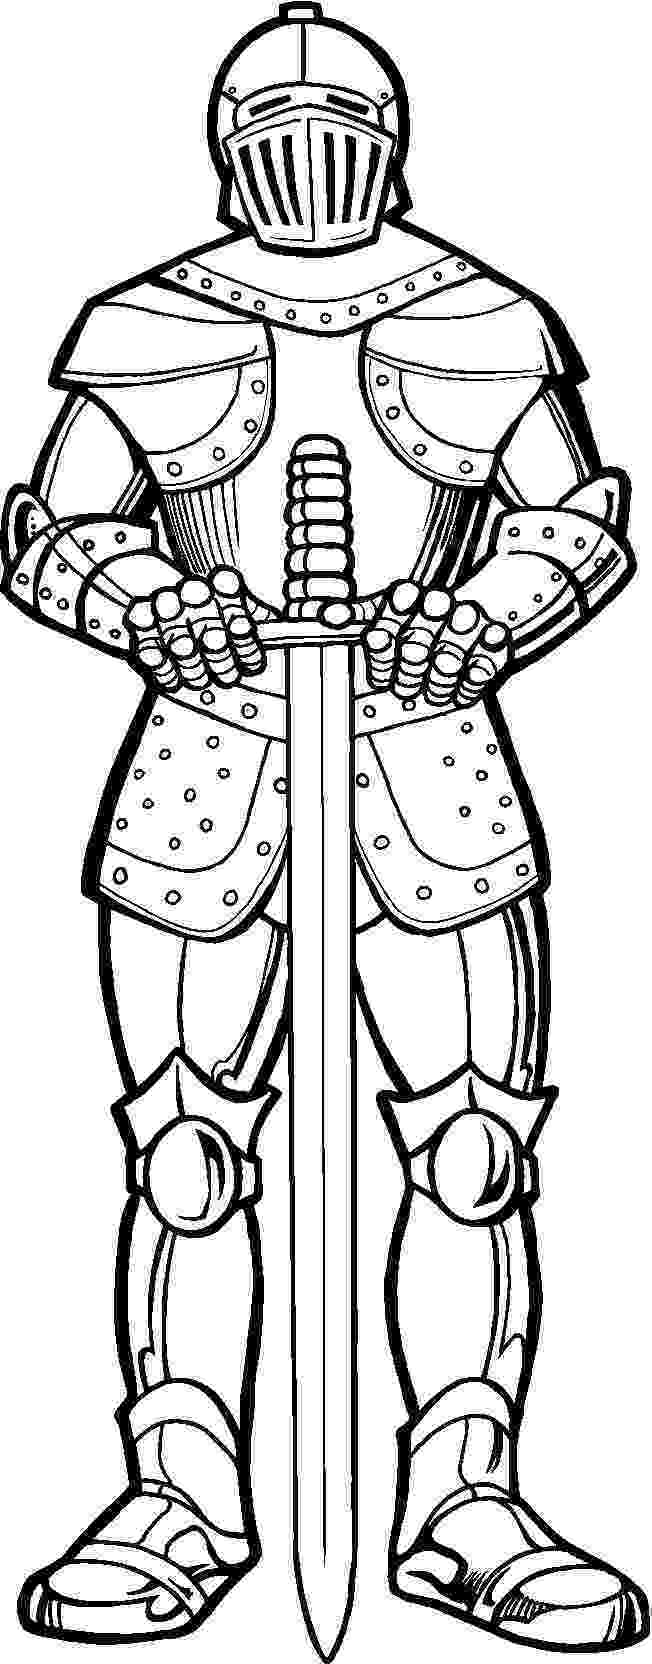 knight colouring pictures knights silence castles and knights coloring pages for knight colouring pictures